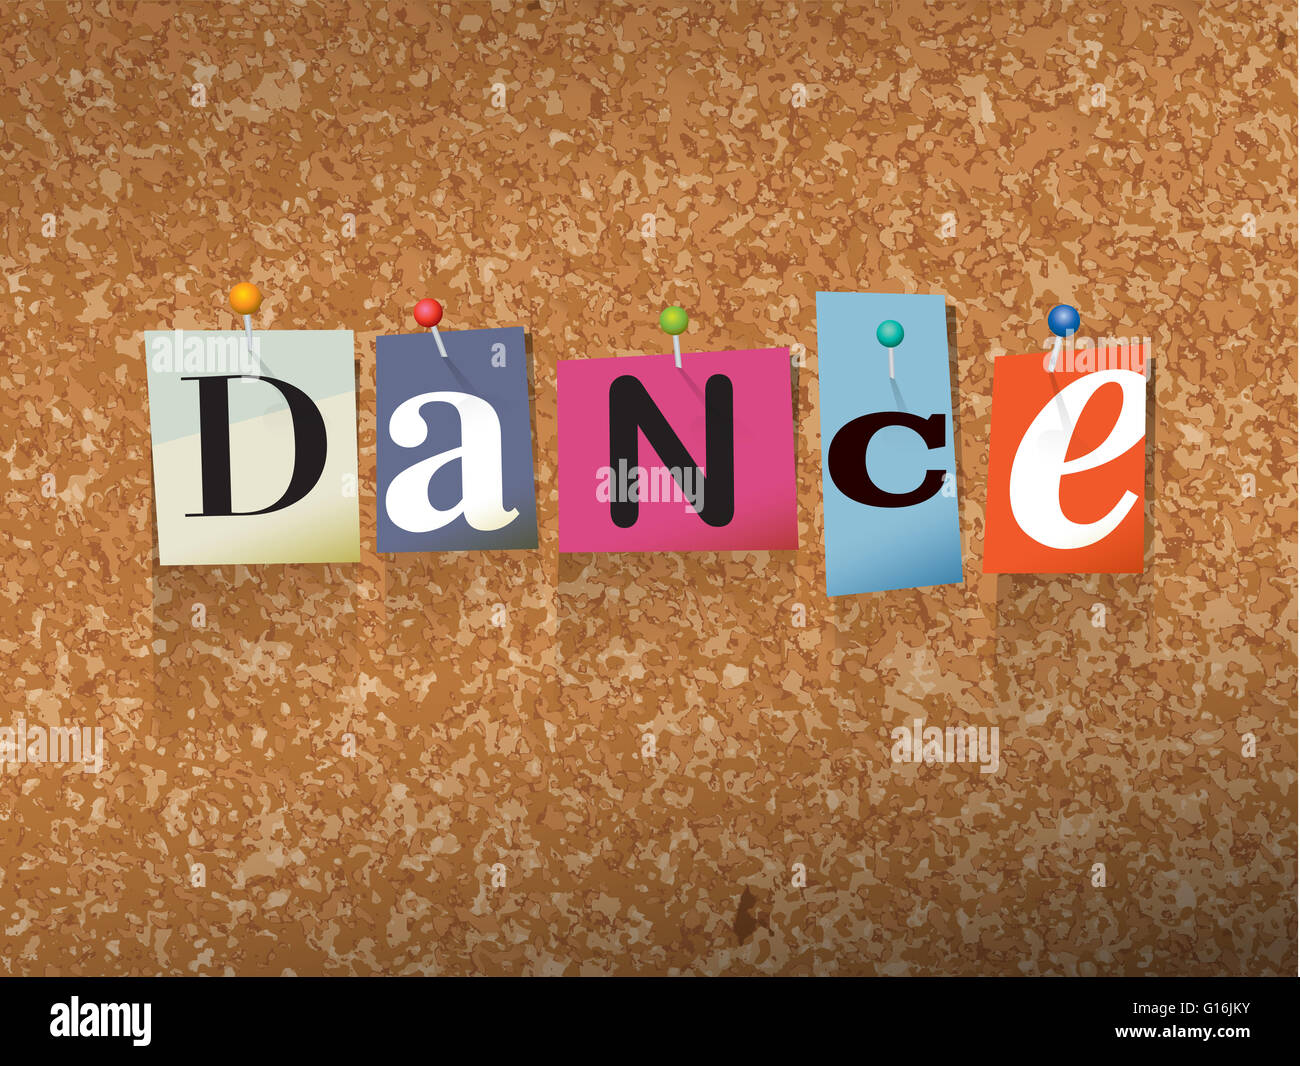 dancing letters stock photos dancing letters stock images alamy the word dance written in cut ransom note style paper letters and pinned to